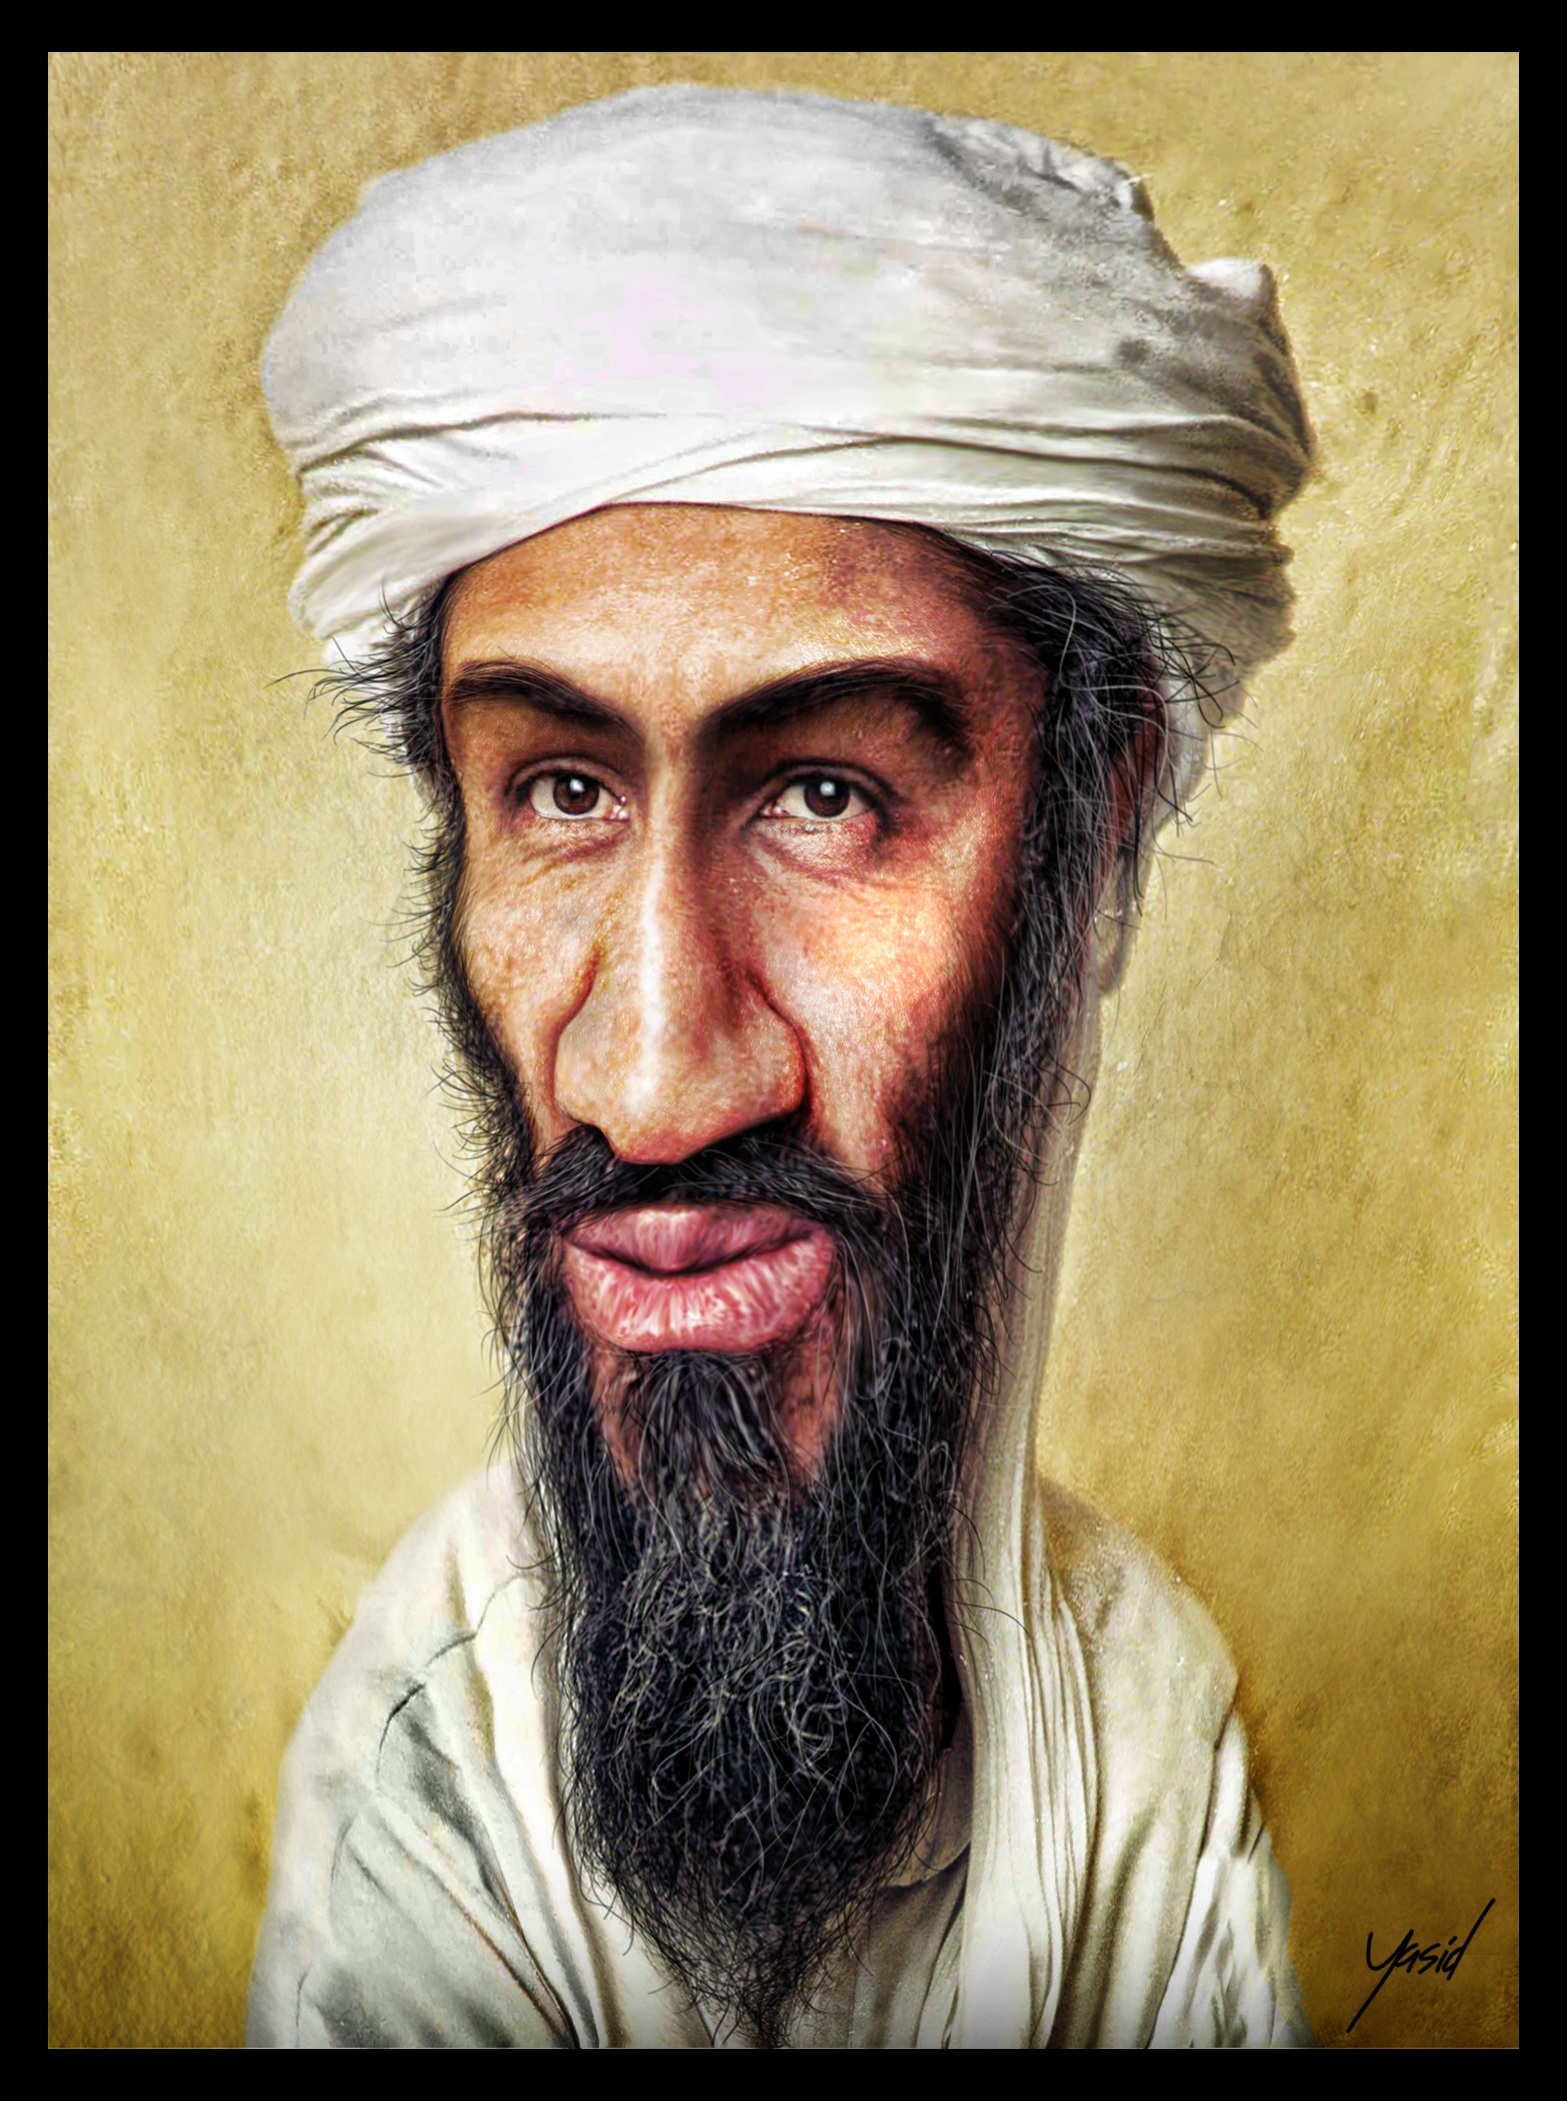 Osama bin Laden Osama bin Laden founder of the militant Islamist organization alQaeda and mastermind of numerous terrorist attacks against the United